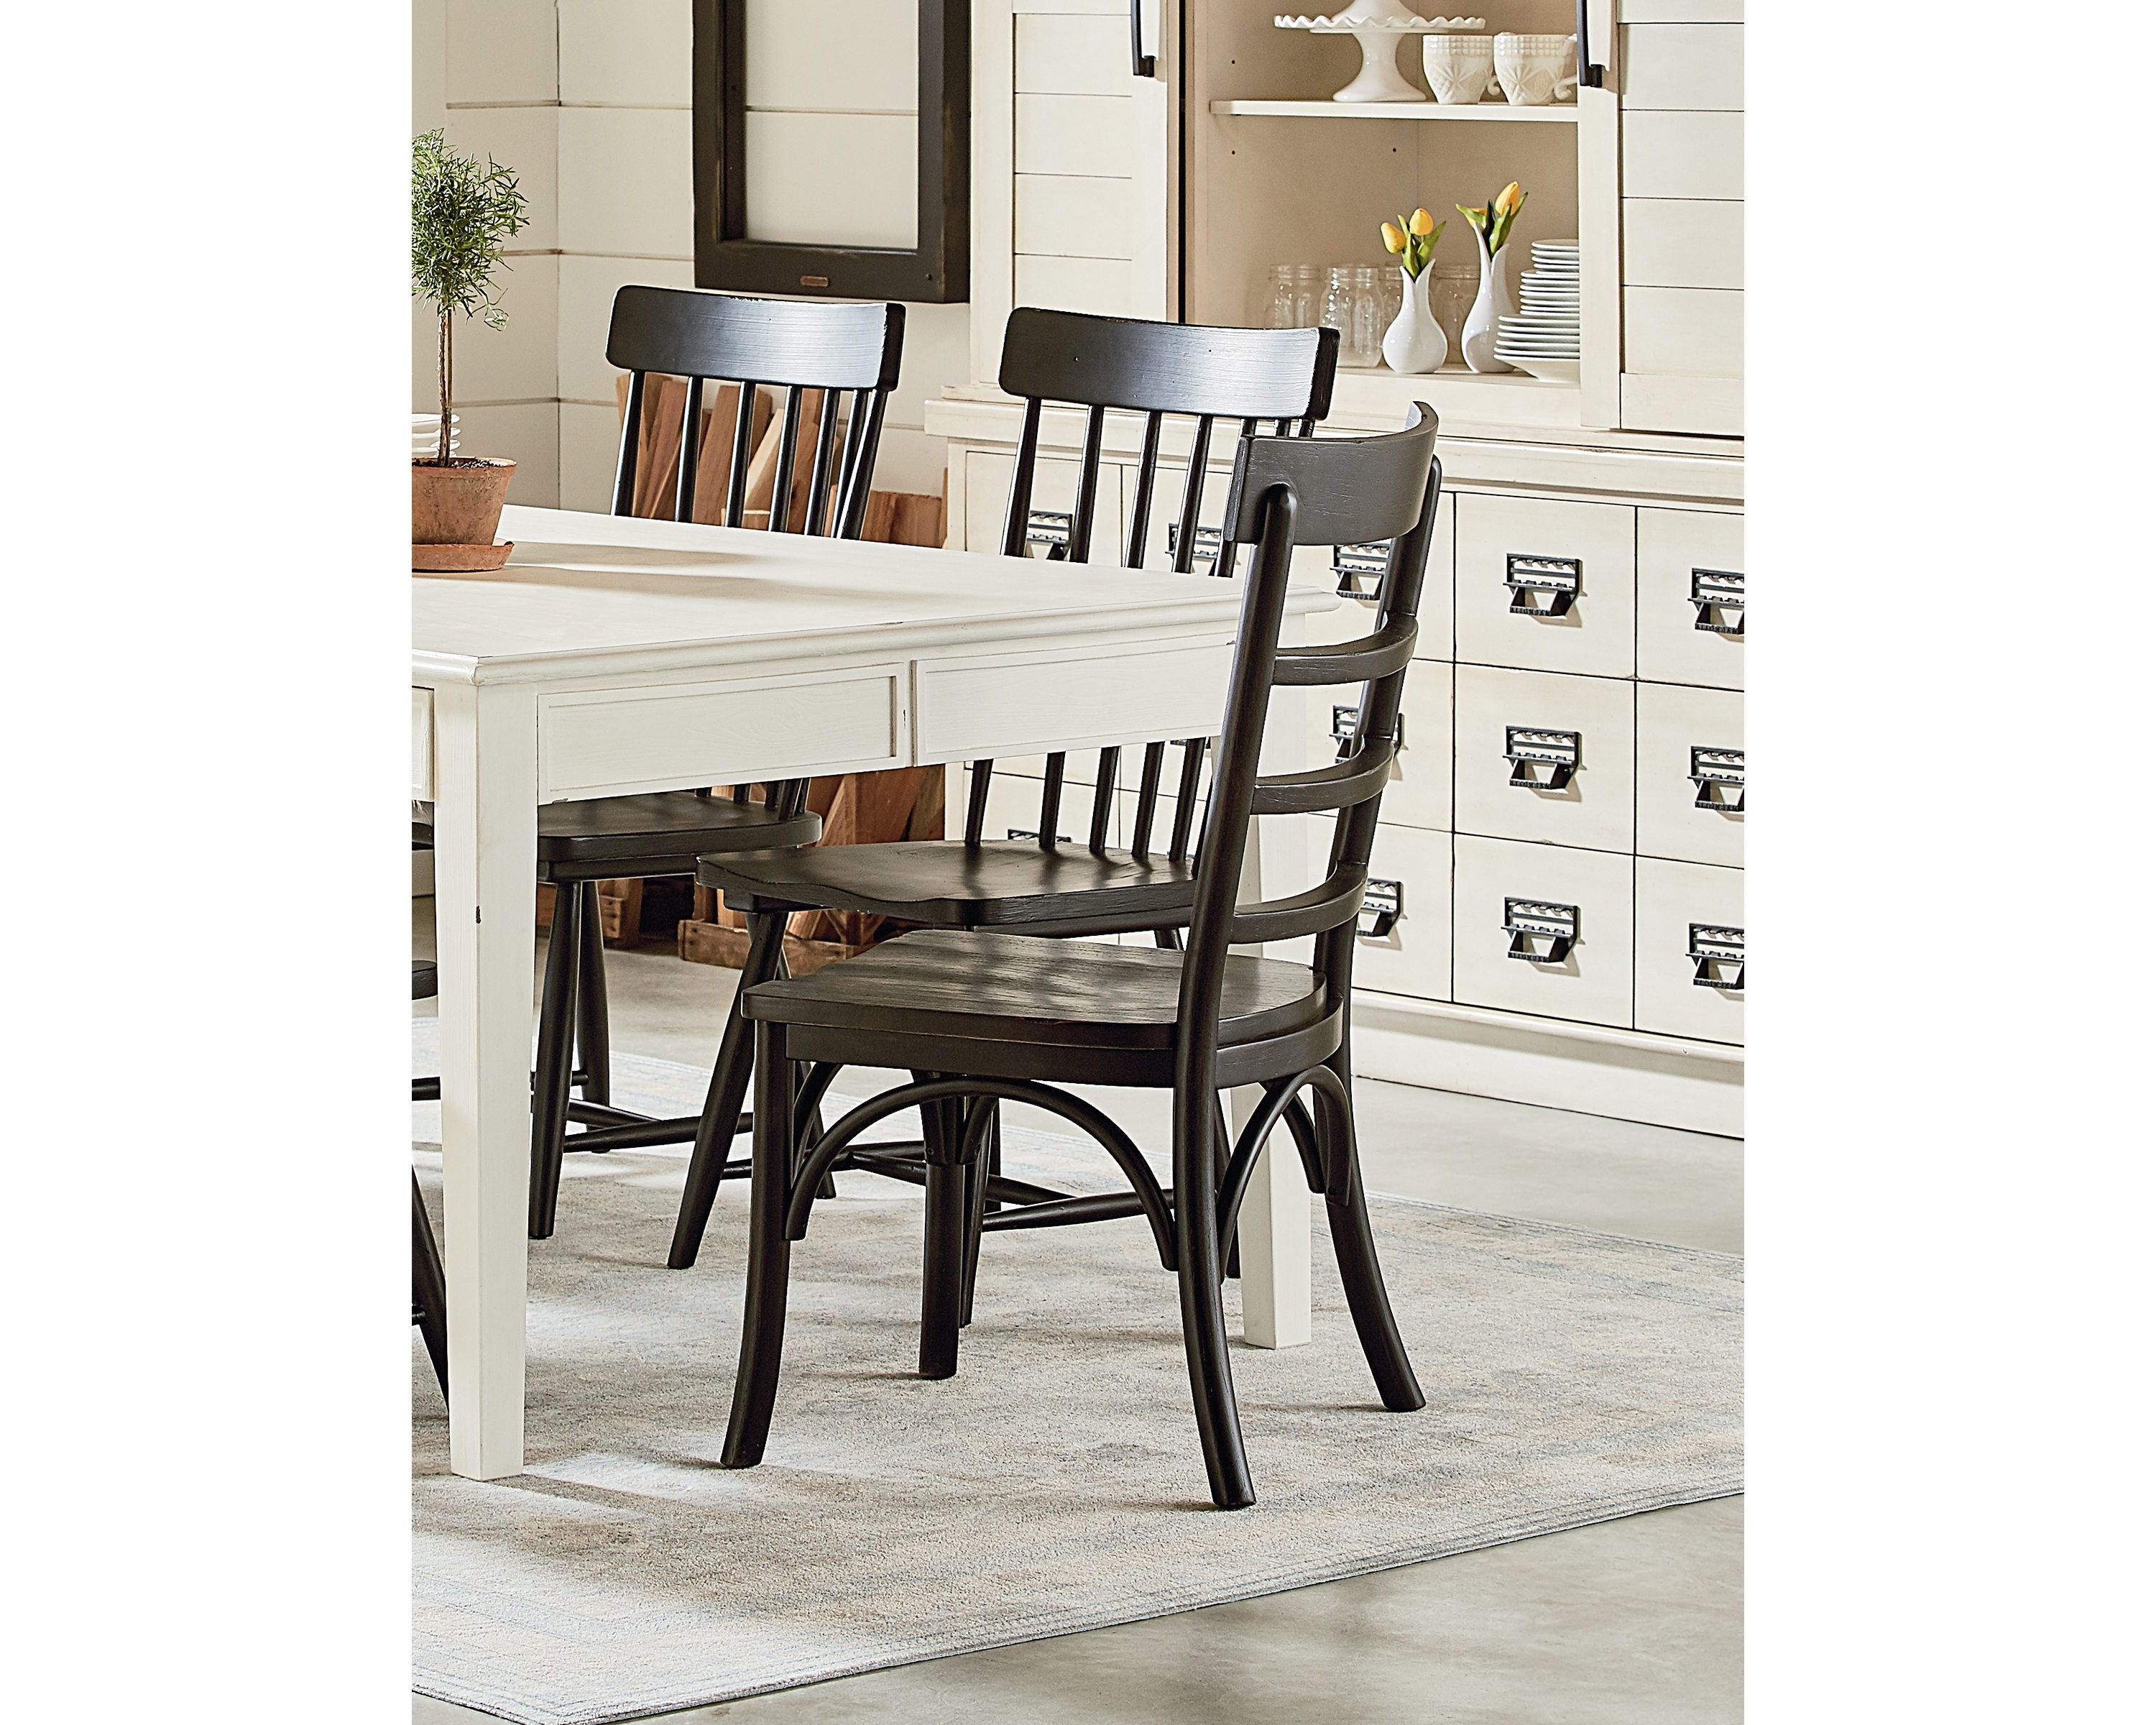 Magnolia Home Harper Patina Side Chairs Throughout Favorite Harper Side Chair – Magnolia Home (View 12 of 20)